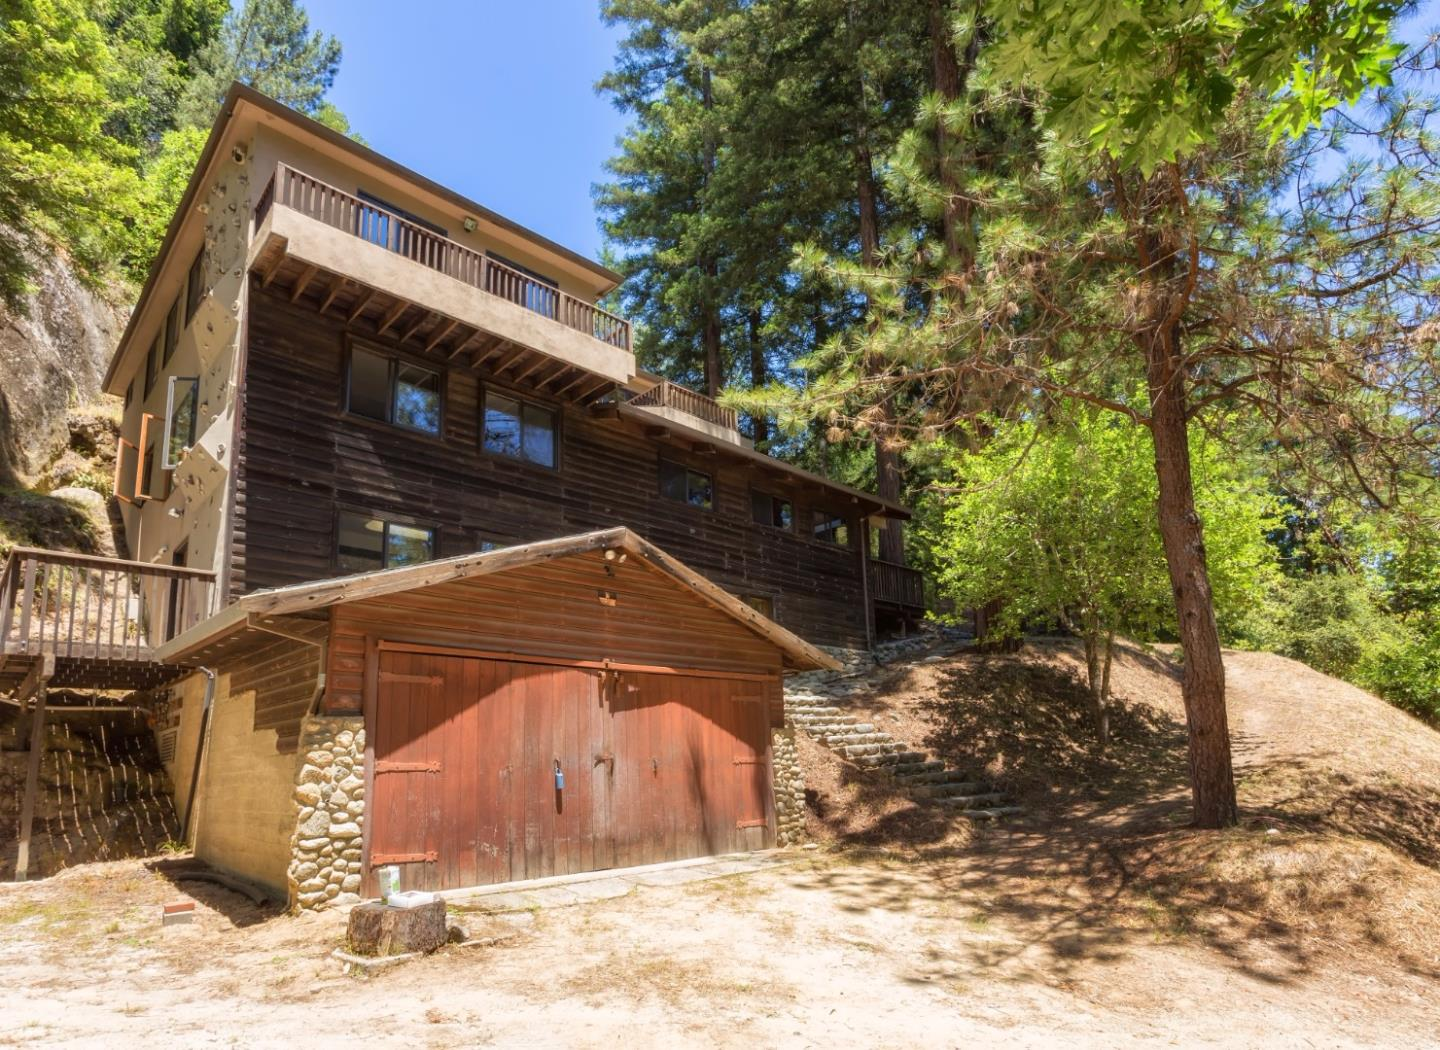 Casa Unifamiliar por un Venta en 333 Wooded Way Boulder Creek, California 95006 Estados Unidos